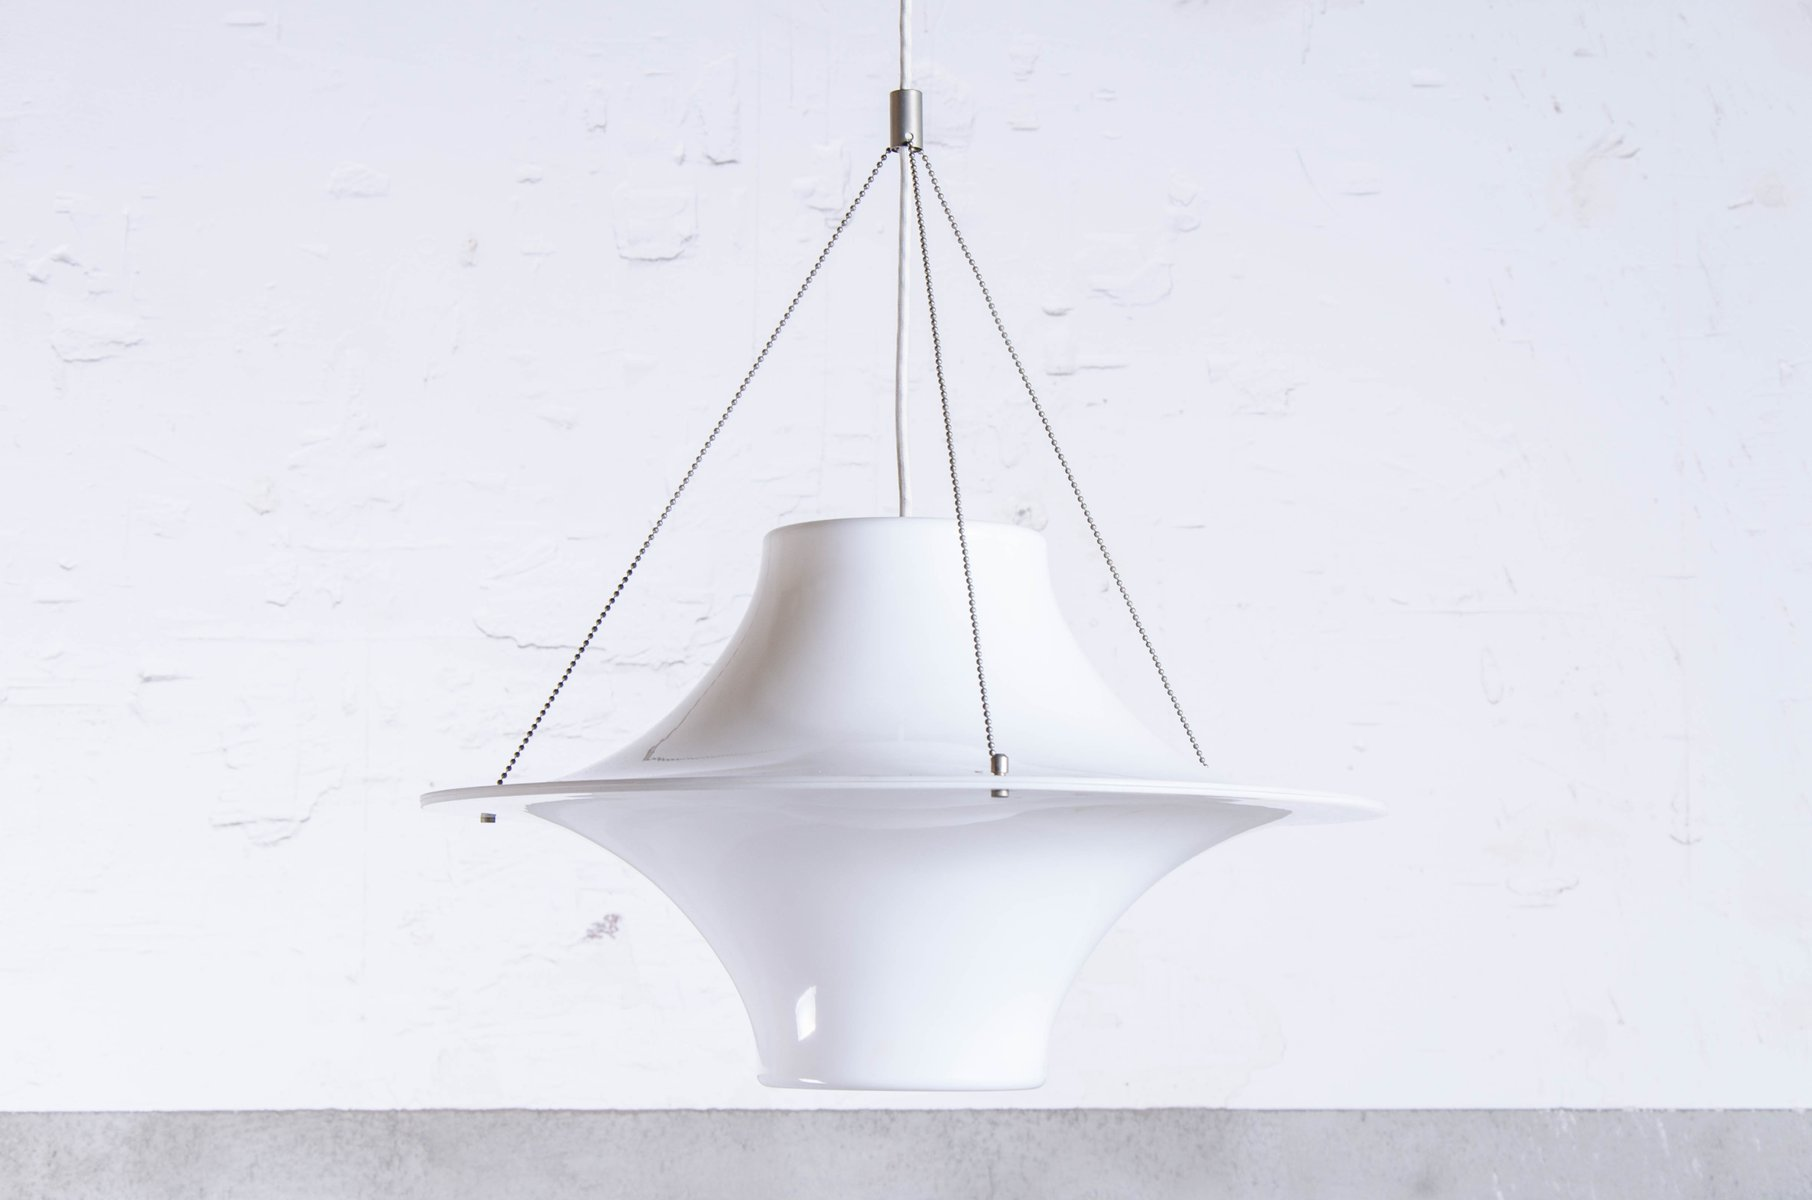 vintage skyflyer lamp by yki nummi for adelta for sale at pamono - vintage skyflyer lamp by yki nummi for adelta